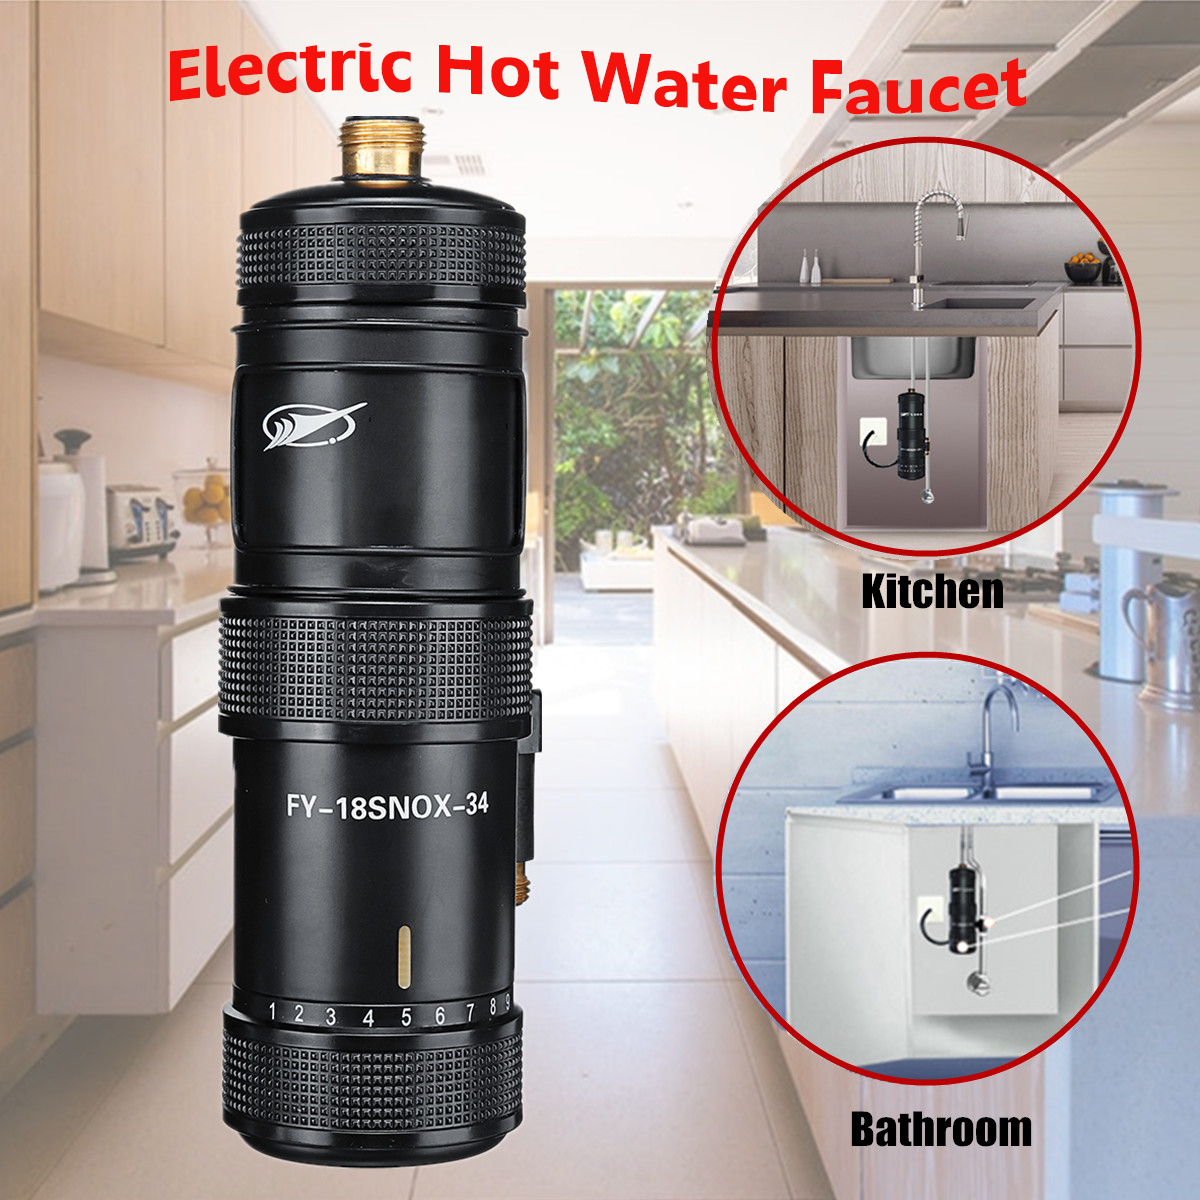 220V 3400W Instant Heating Electric Hot Kitchen Electric Faucet Water Heater Hot Water System Shower Tap Bathroom kitchen image